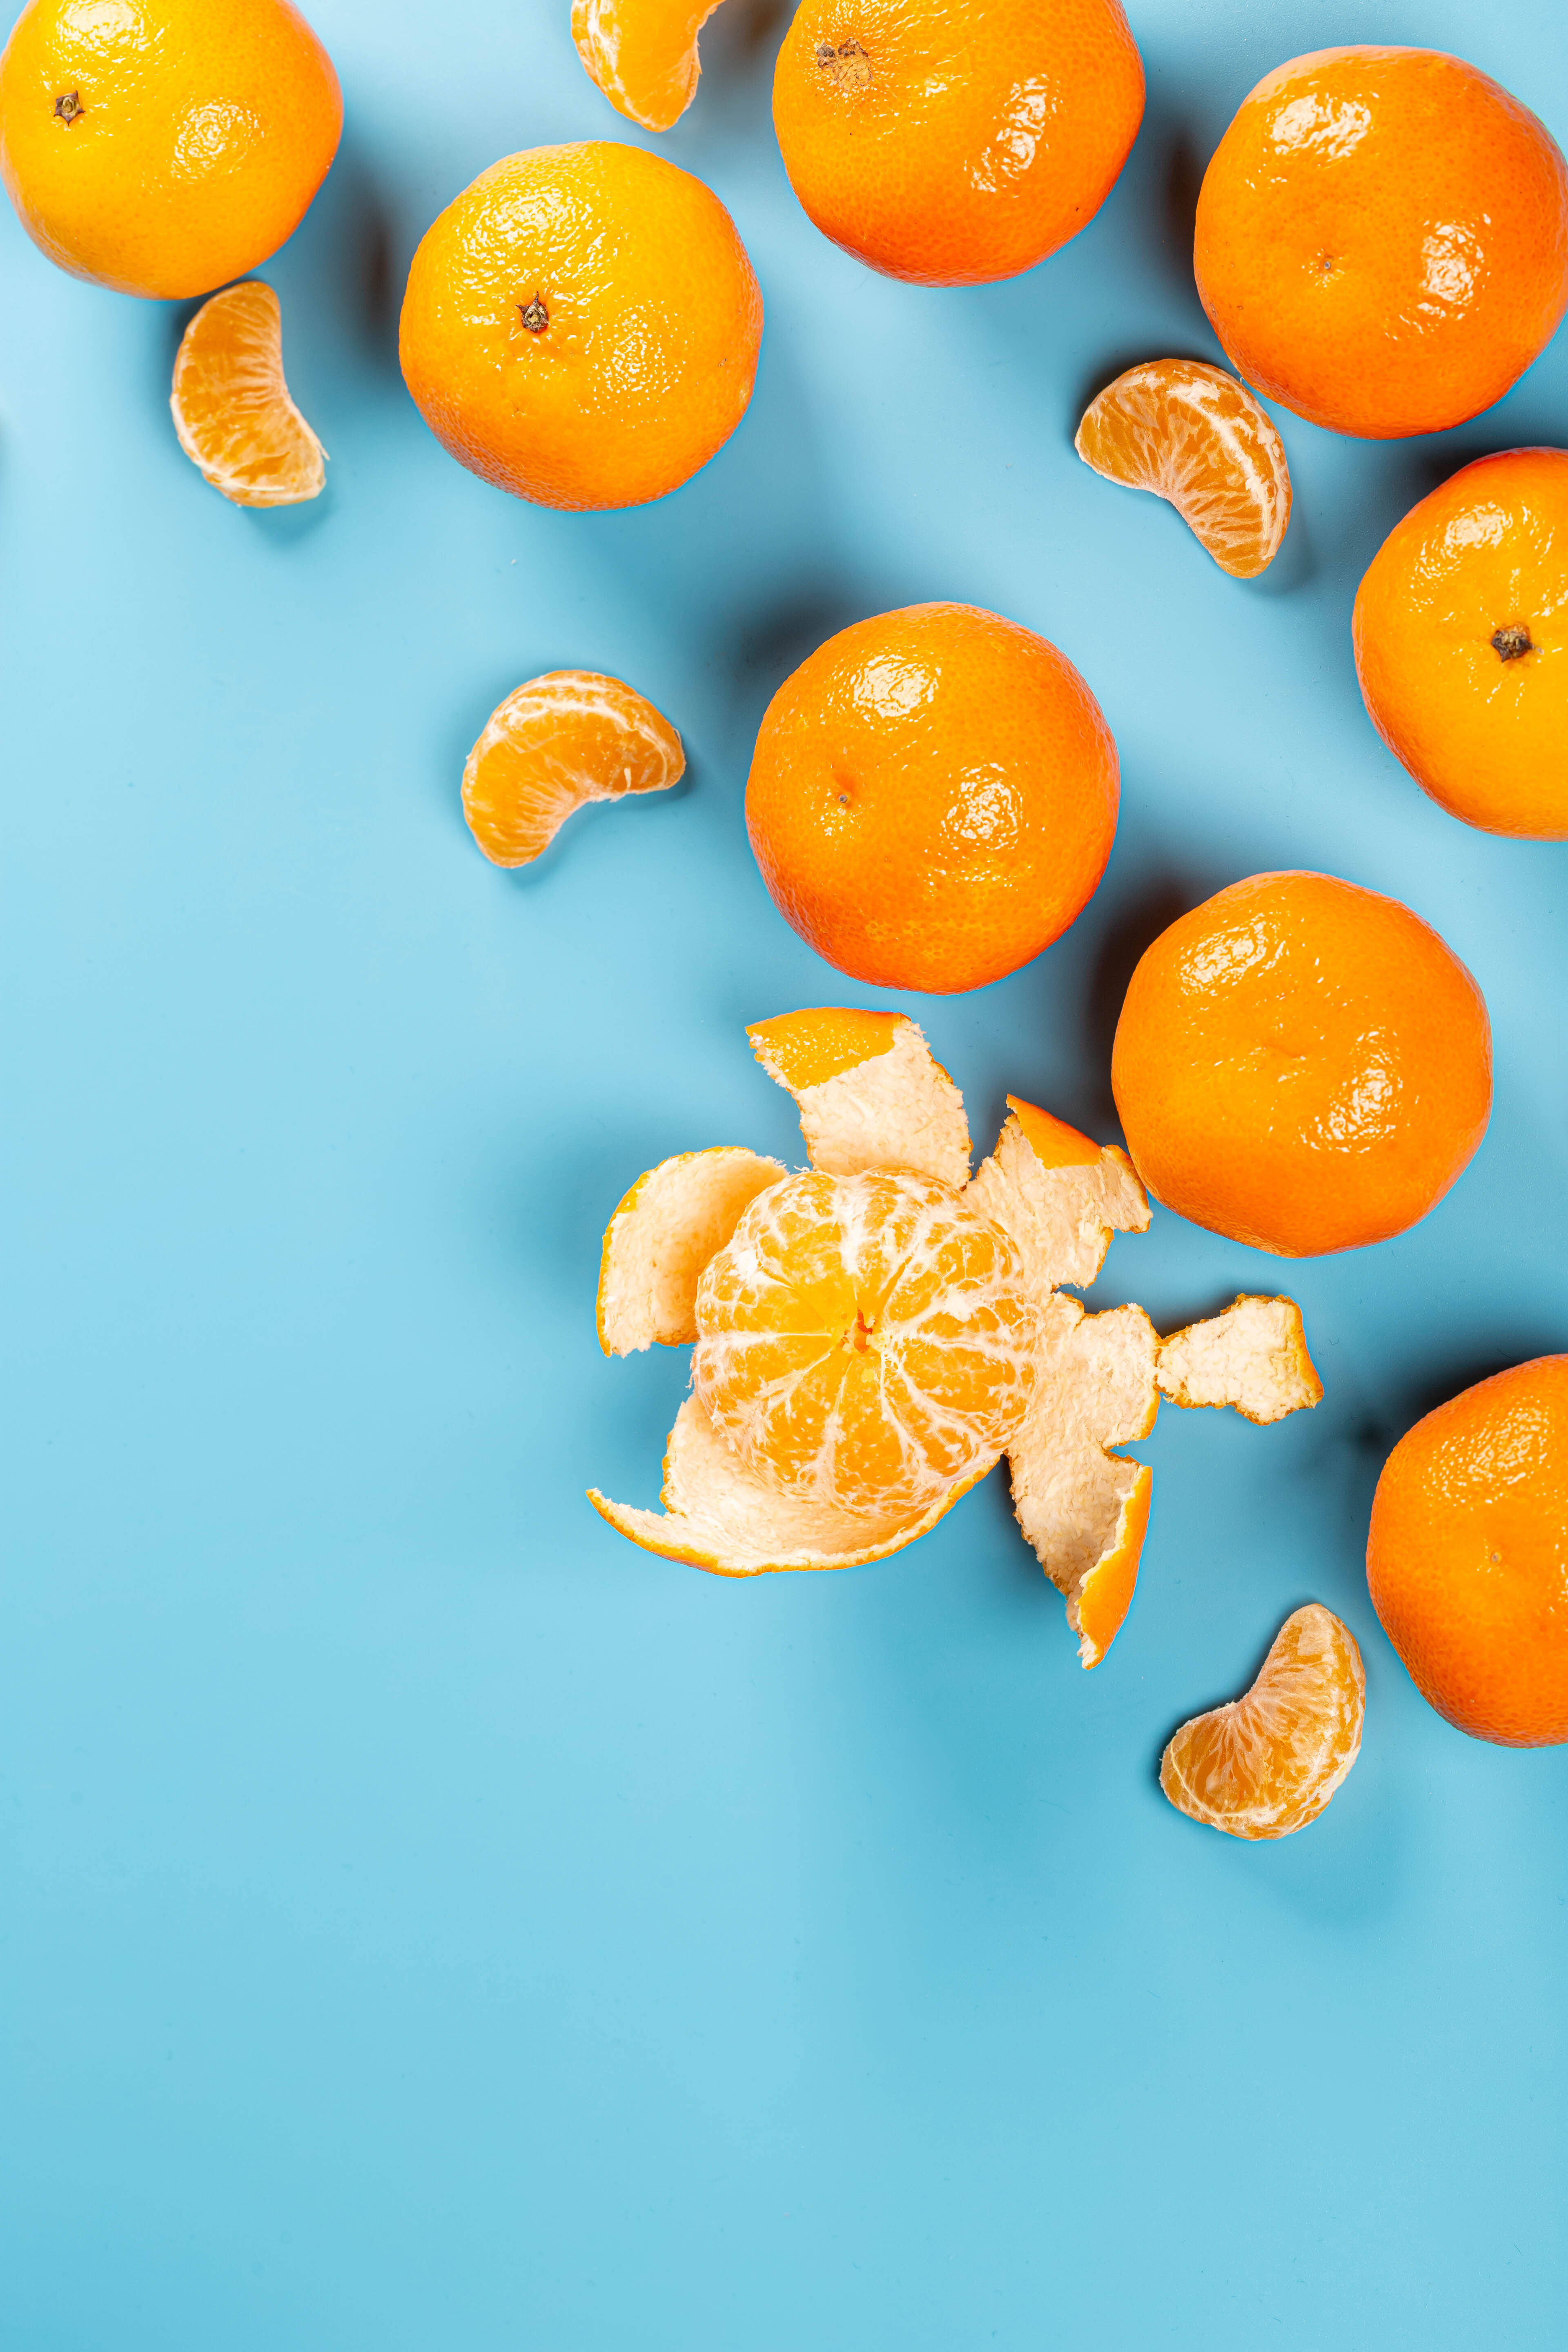 146368 download wallpaper Fruits, Food, Tangerines, Citrus, Lobules, Slices screensavers and pictures for free